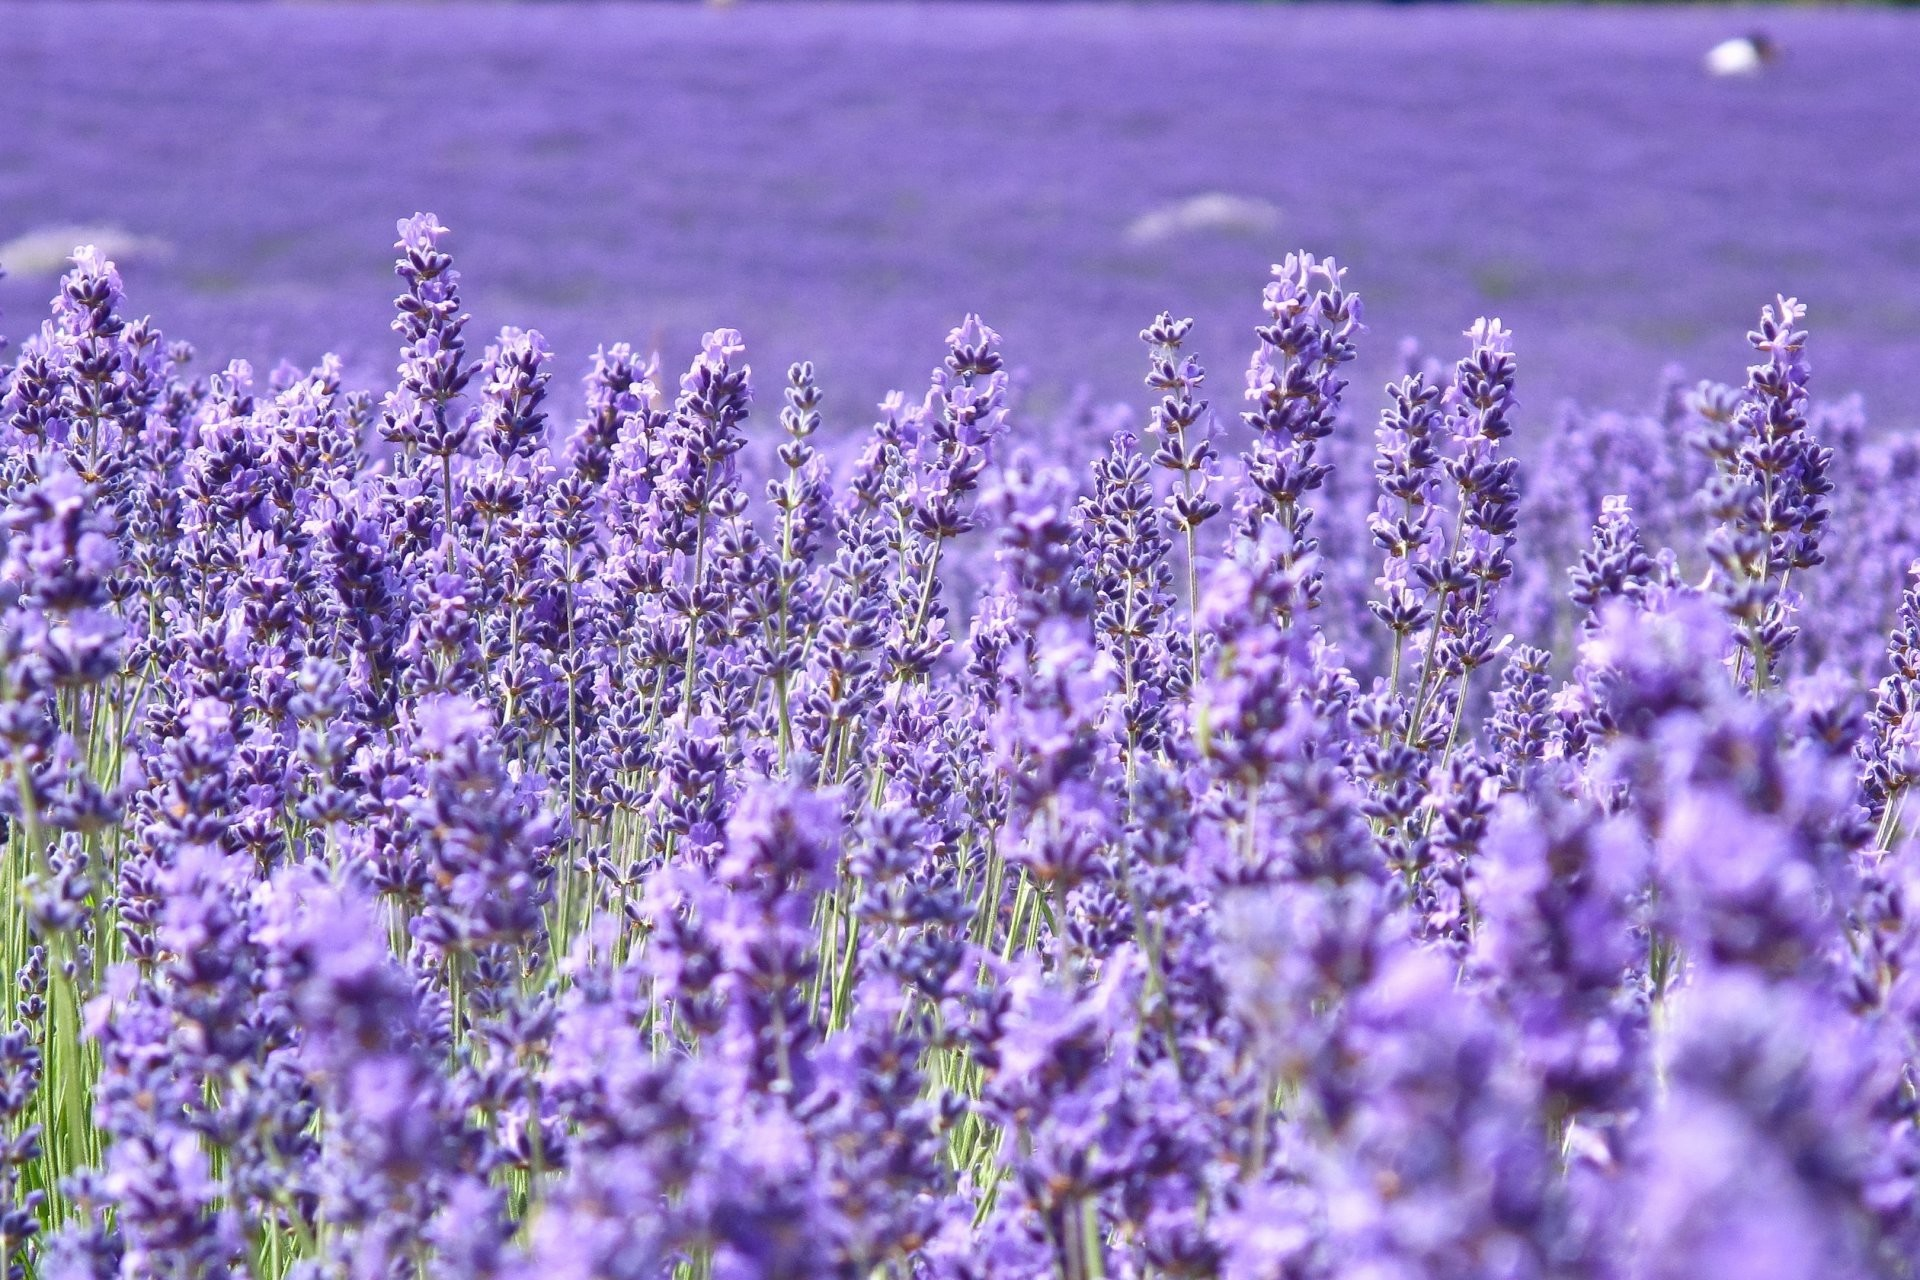 1920x1280 flower flowers lavender purple the field of the field blur background  wallpaper widescreen full screen widescreen